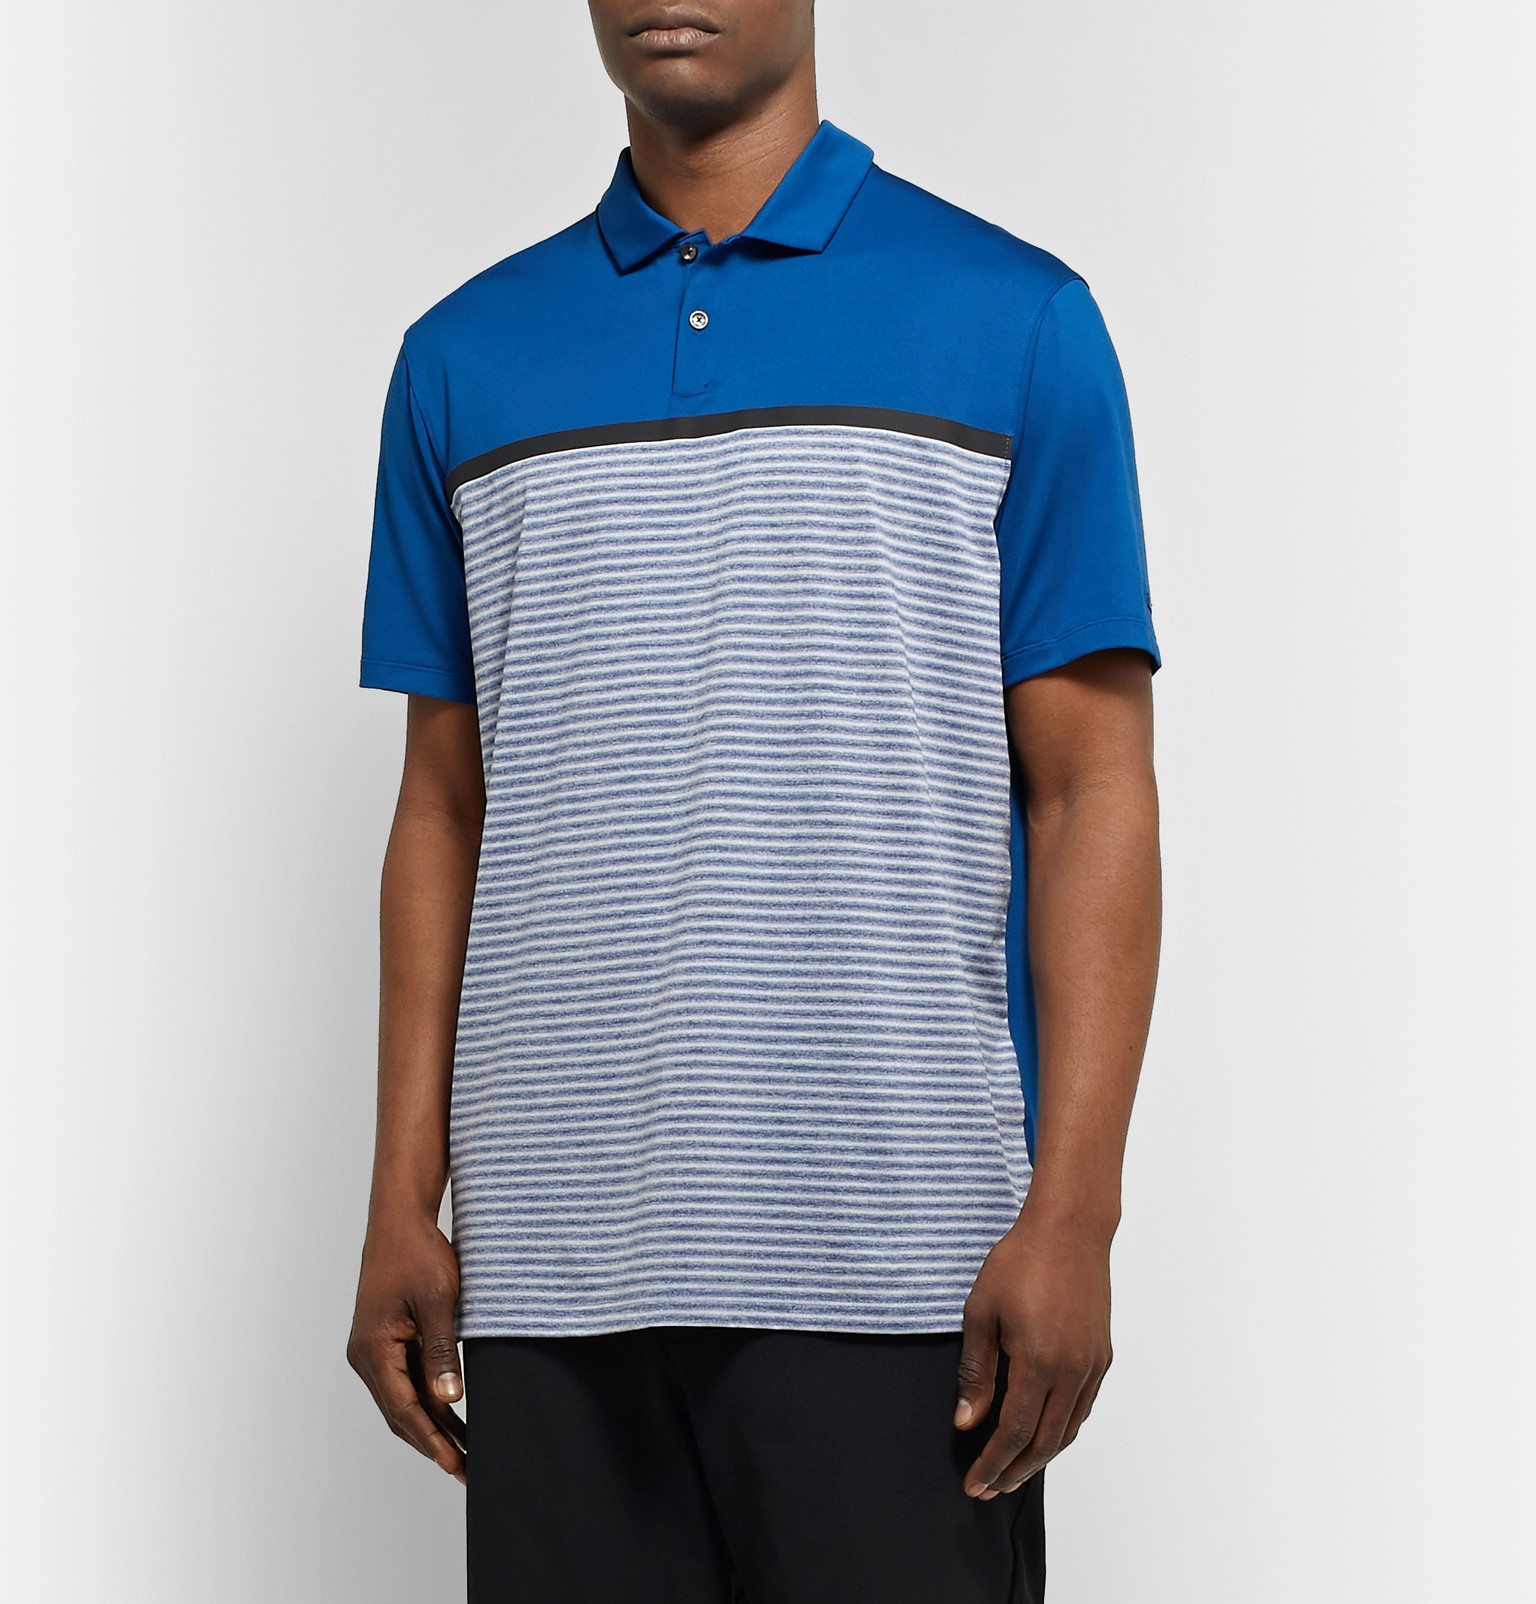 b78fdbbf Nike Golf - Tiger Woods Vapor Striped Dri-FIT Polo Shirt